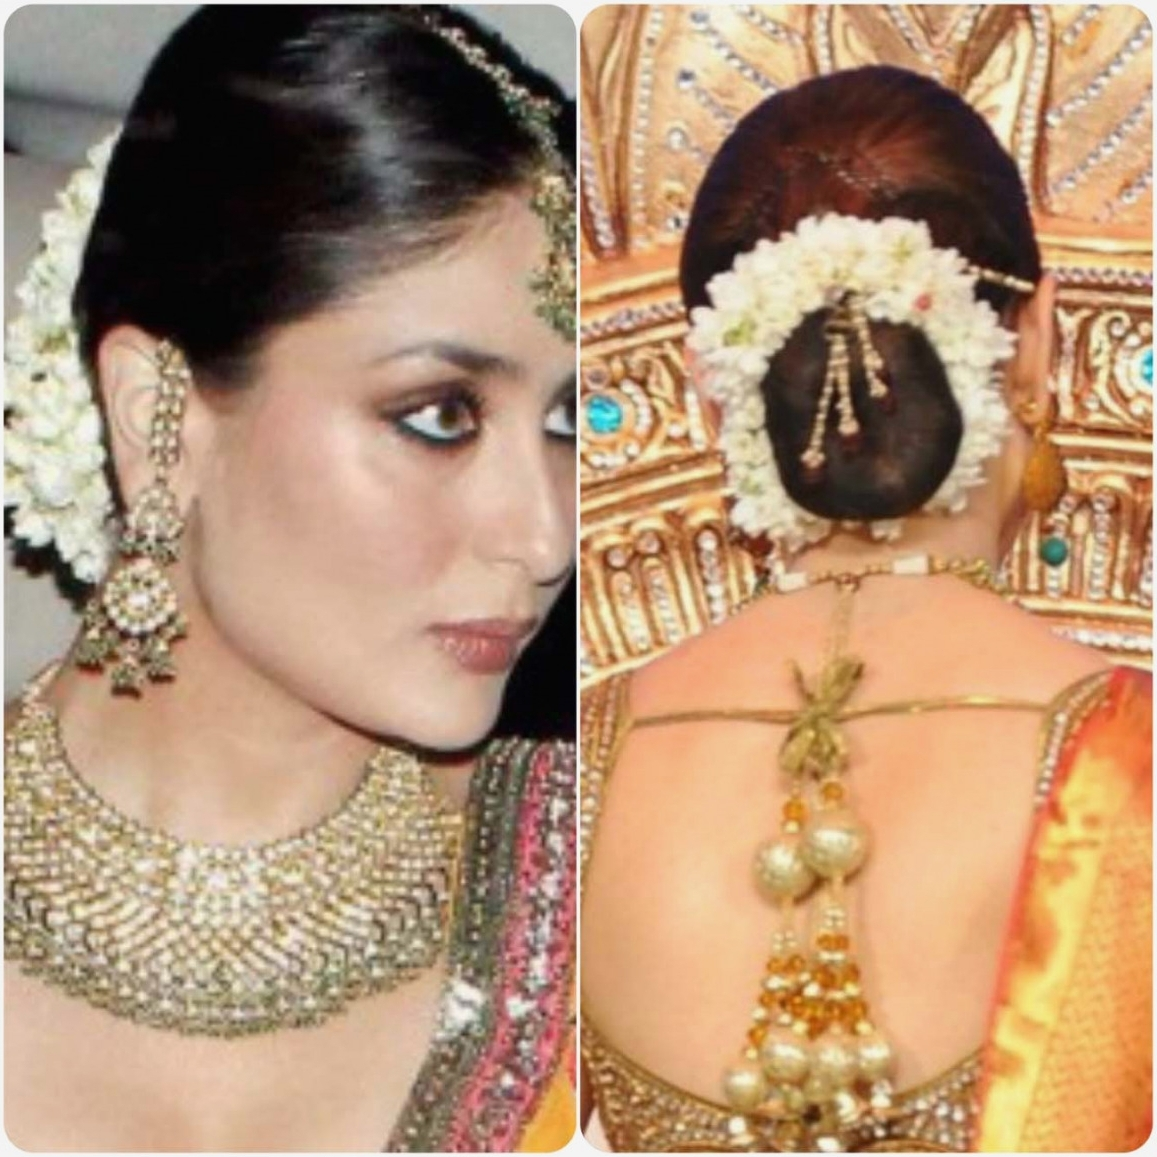 Wedding Hairstyles : Indian Bridal Wedding Hairstyles New Hairstyle Inside Favorite Bridal Wedding Hairstyles (View 13 of 15)